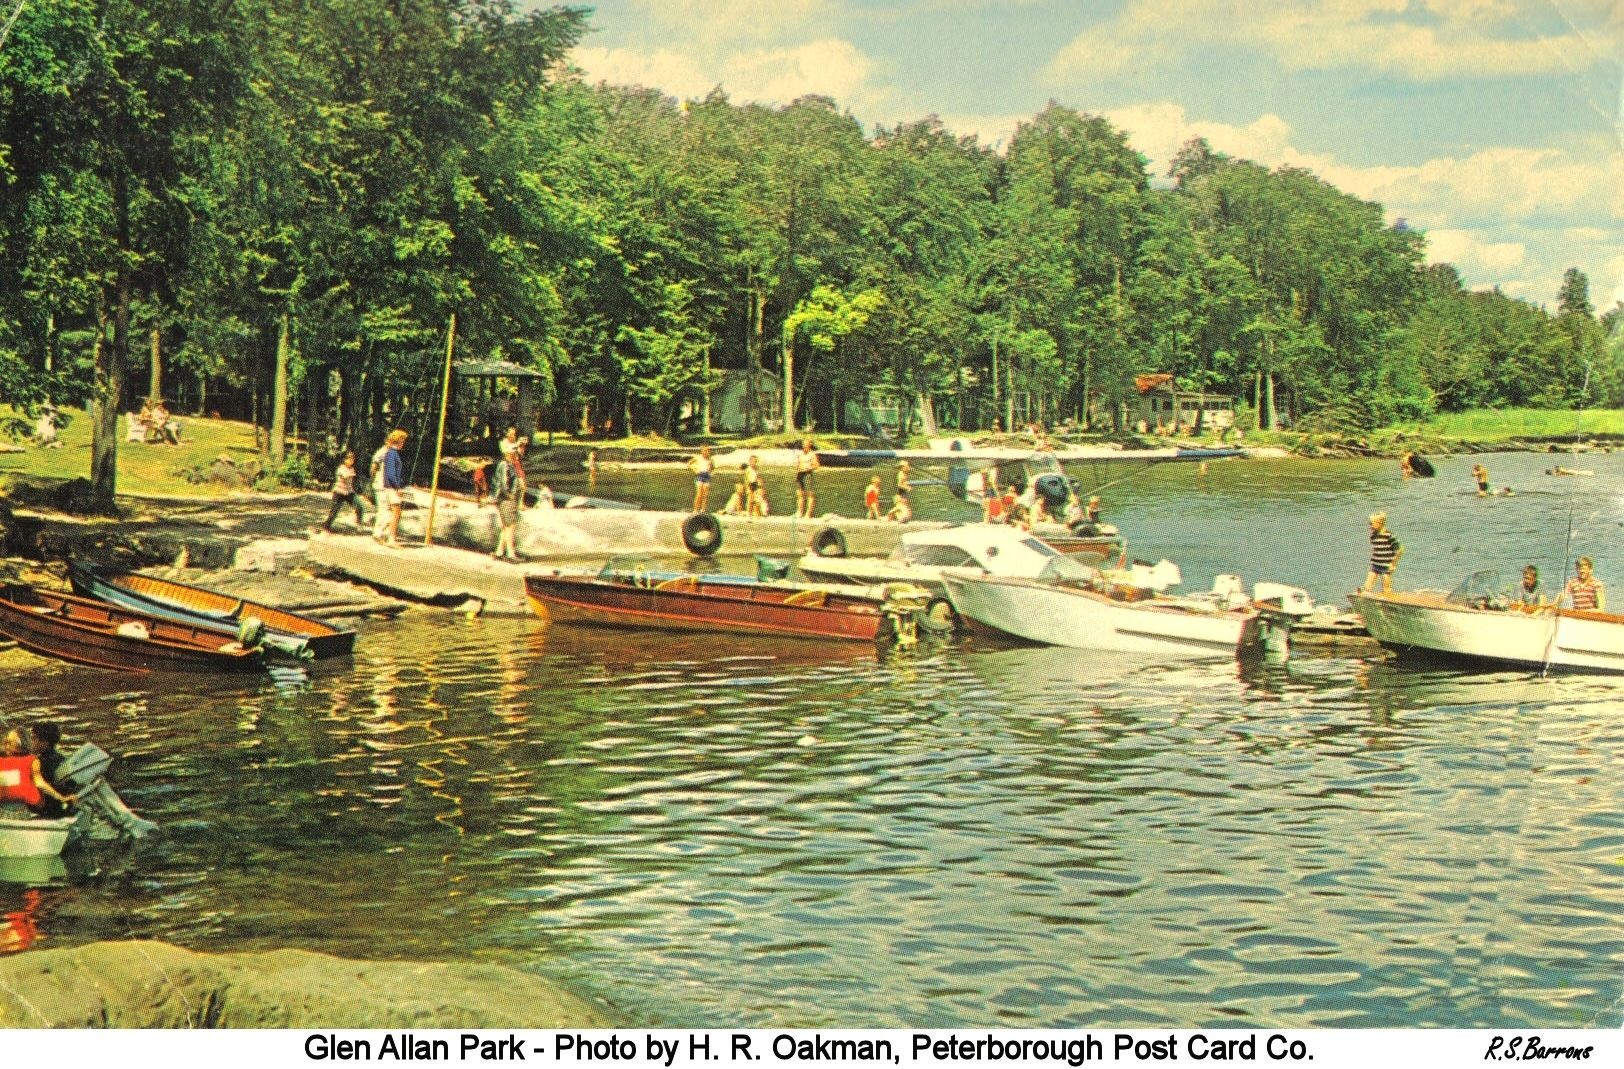 From Ron Barrons: one of those rare Oakman photographs taken from ground level.  The card says 'Glen Allan Park on the north shore of Crowe Lake - 15 housekeeping cottages. Trailer and camping facilities. Safe sandy beach, recreation building, boats and motors, ice. Good fishing. Write Vern and Ethel Caverly...'